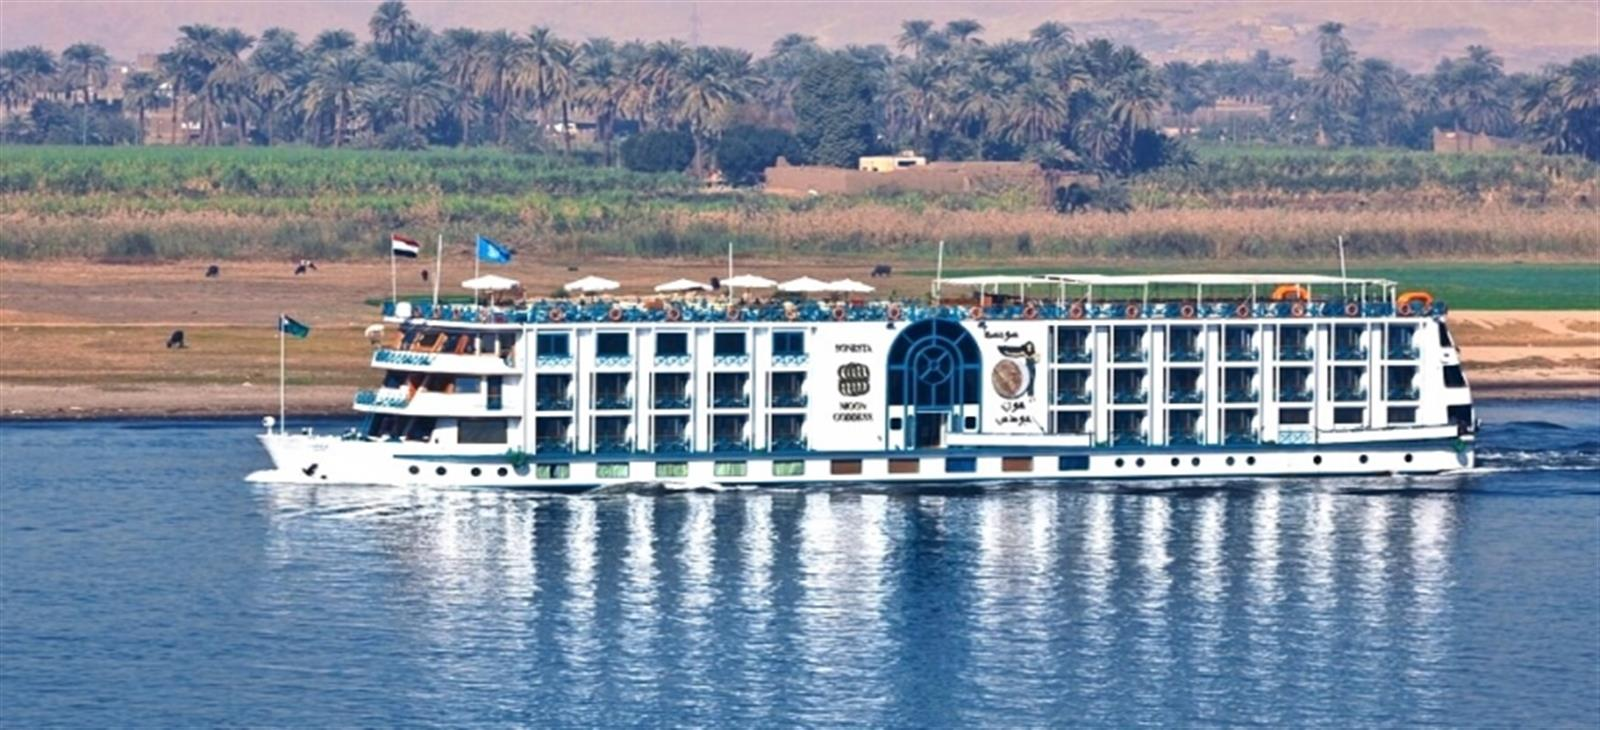 cairo accessible nile cruise holiday